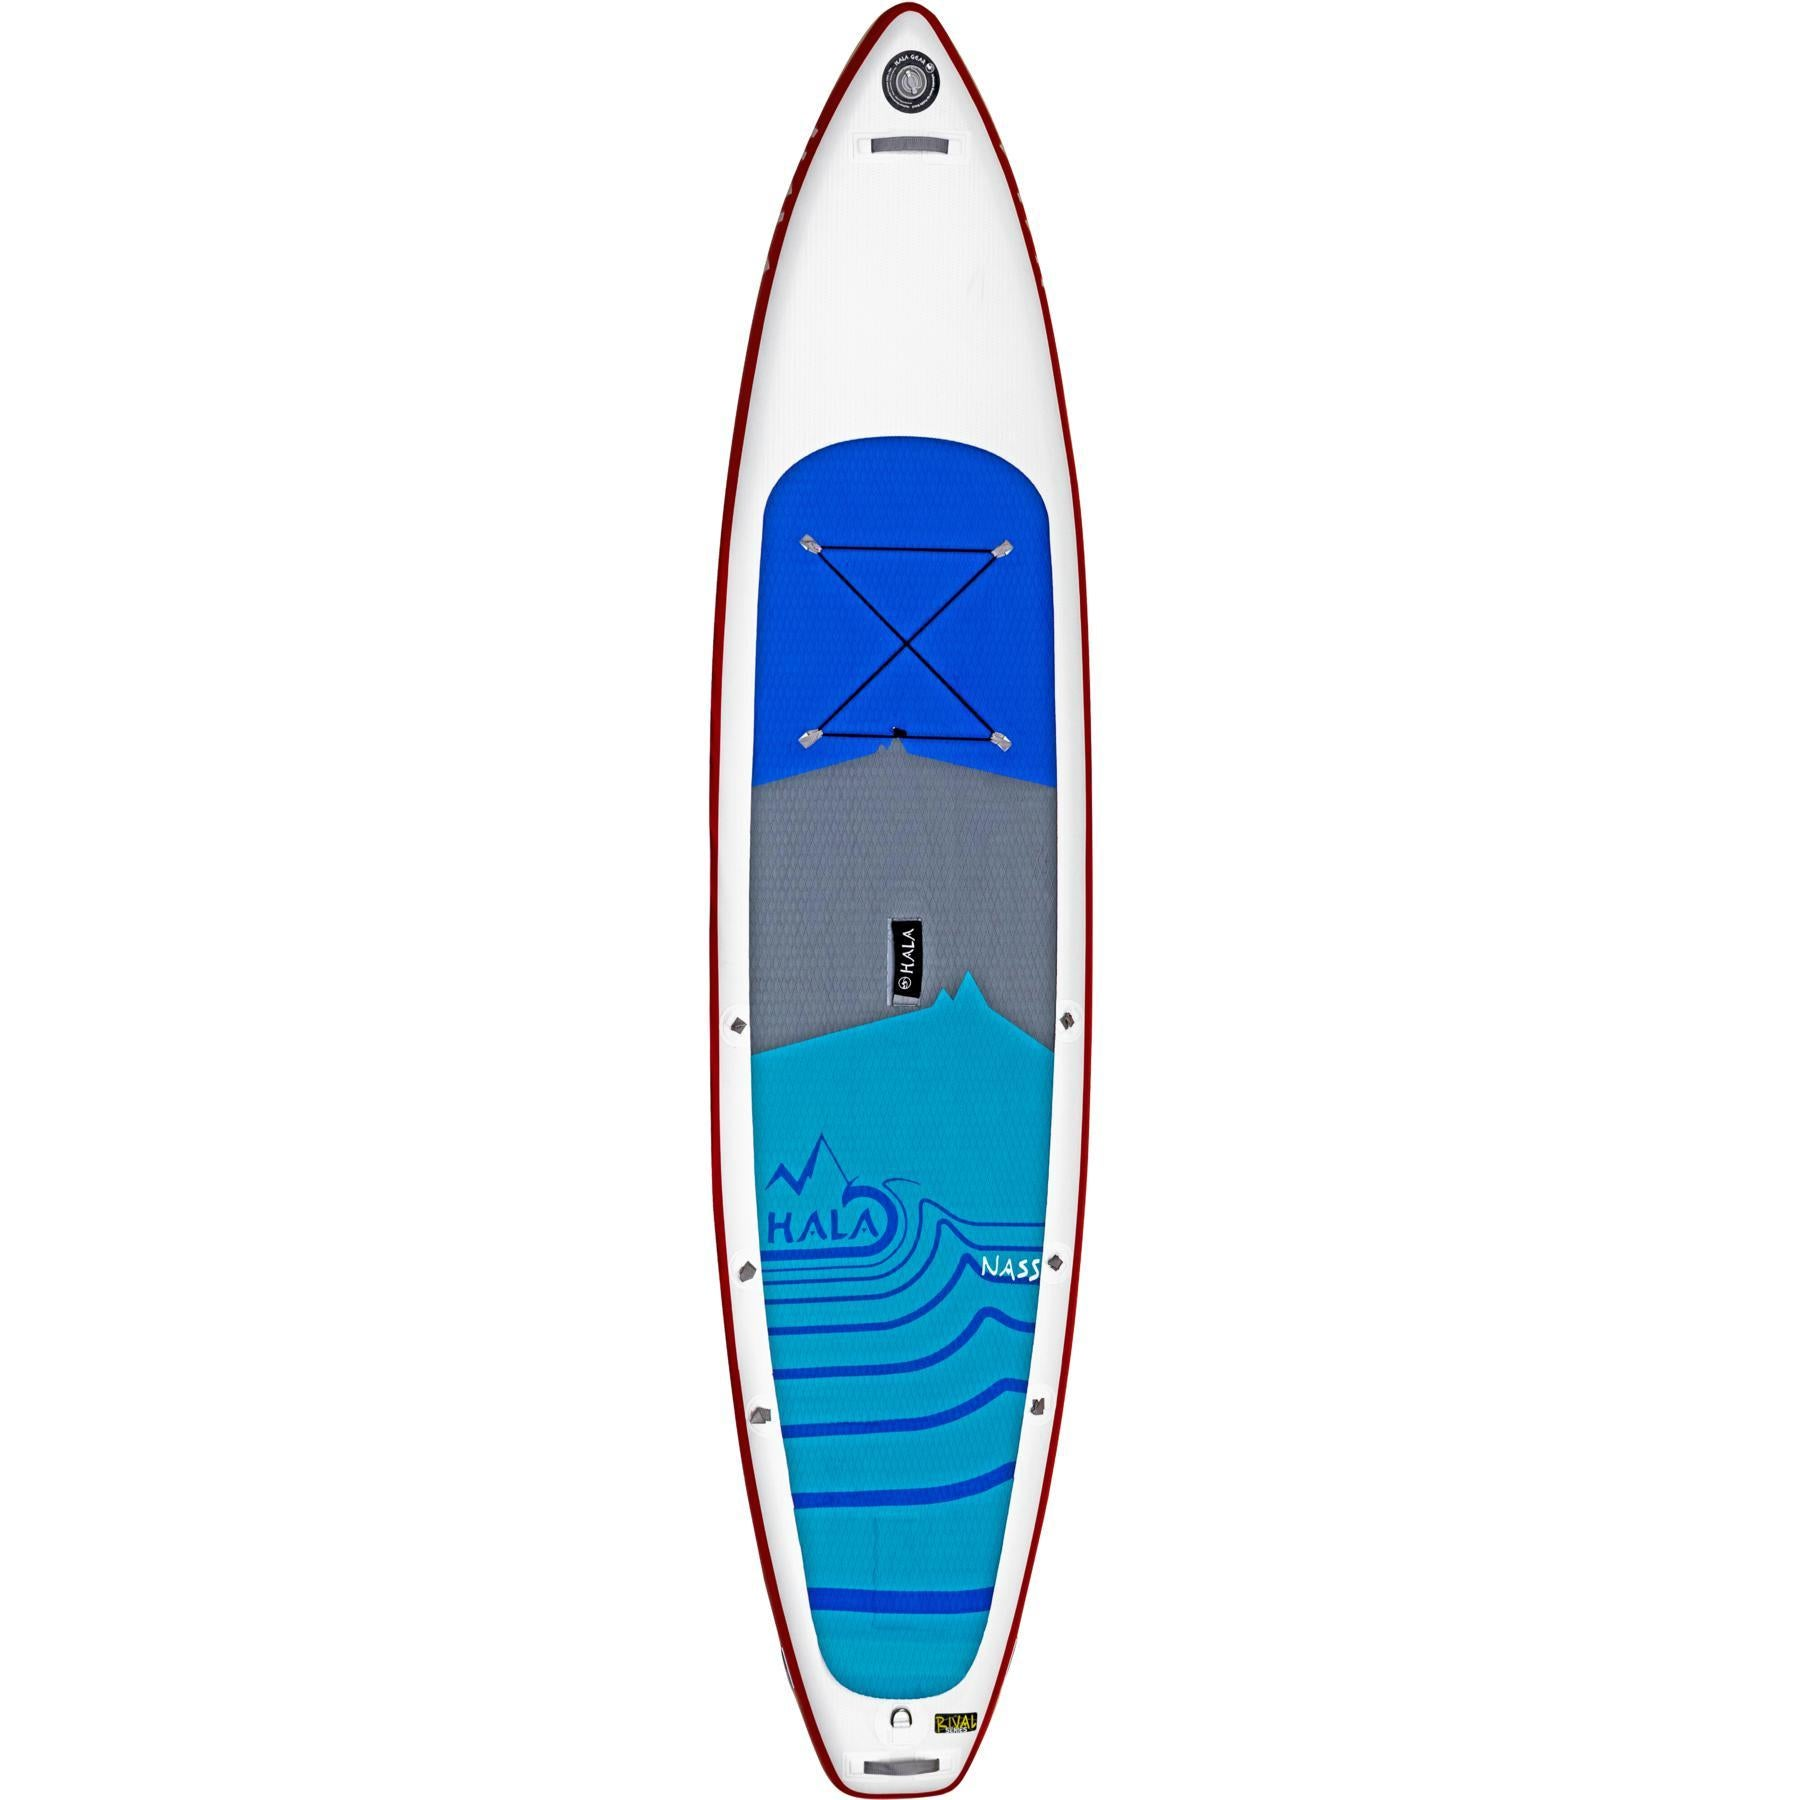 2020 HALA Rival Nass Inflatable Paddleboard-Big Winds